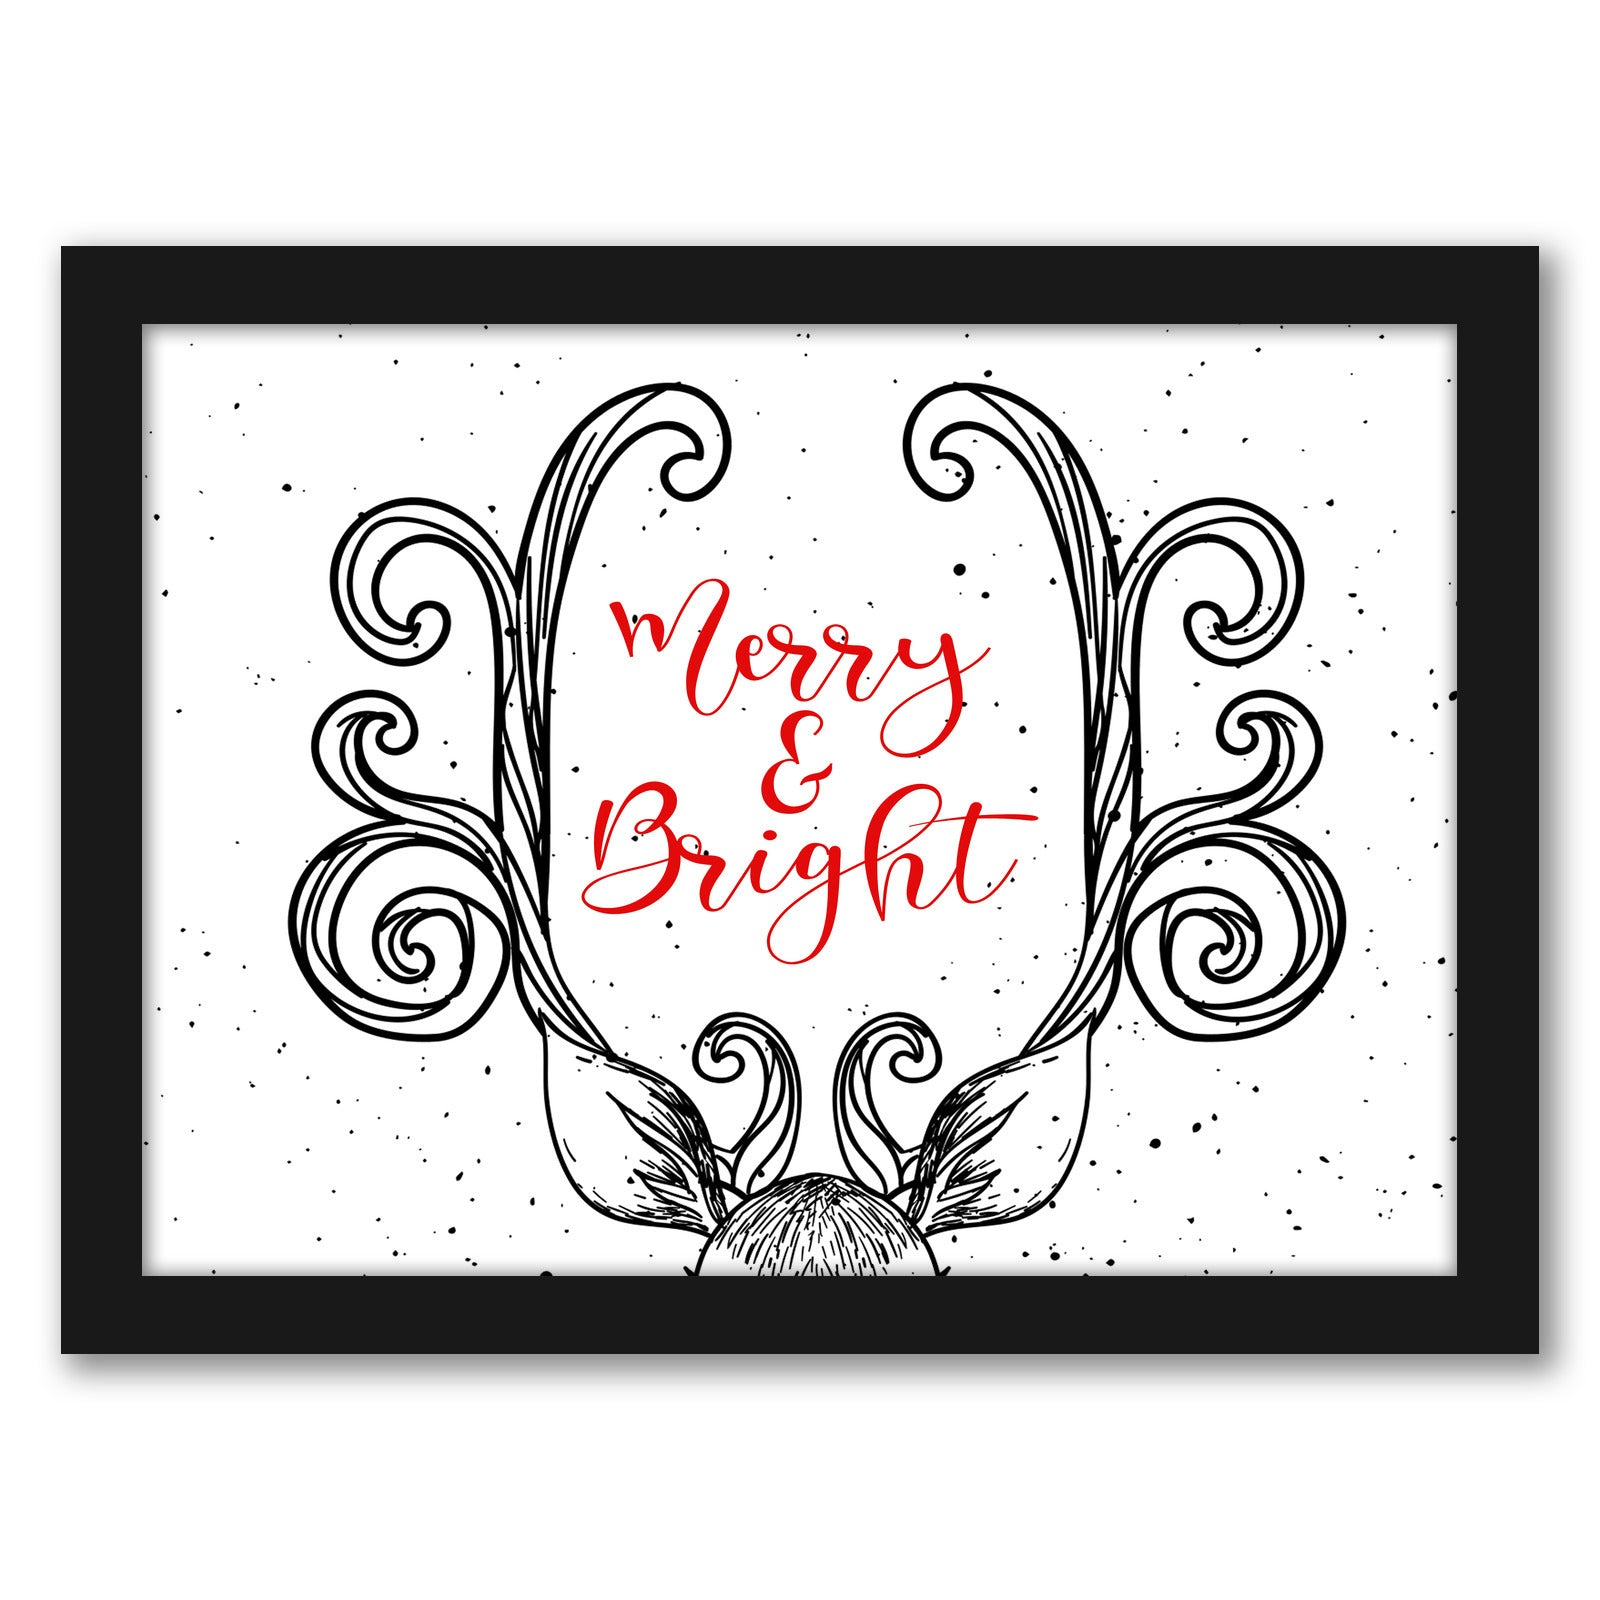 Merry And Bright In Horns by Tanya Shumkina - Black Framed Print - Wall Art - Americanflat